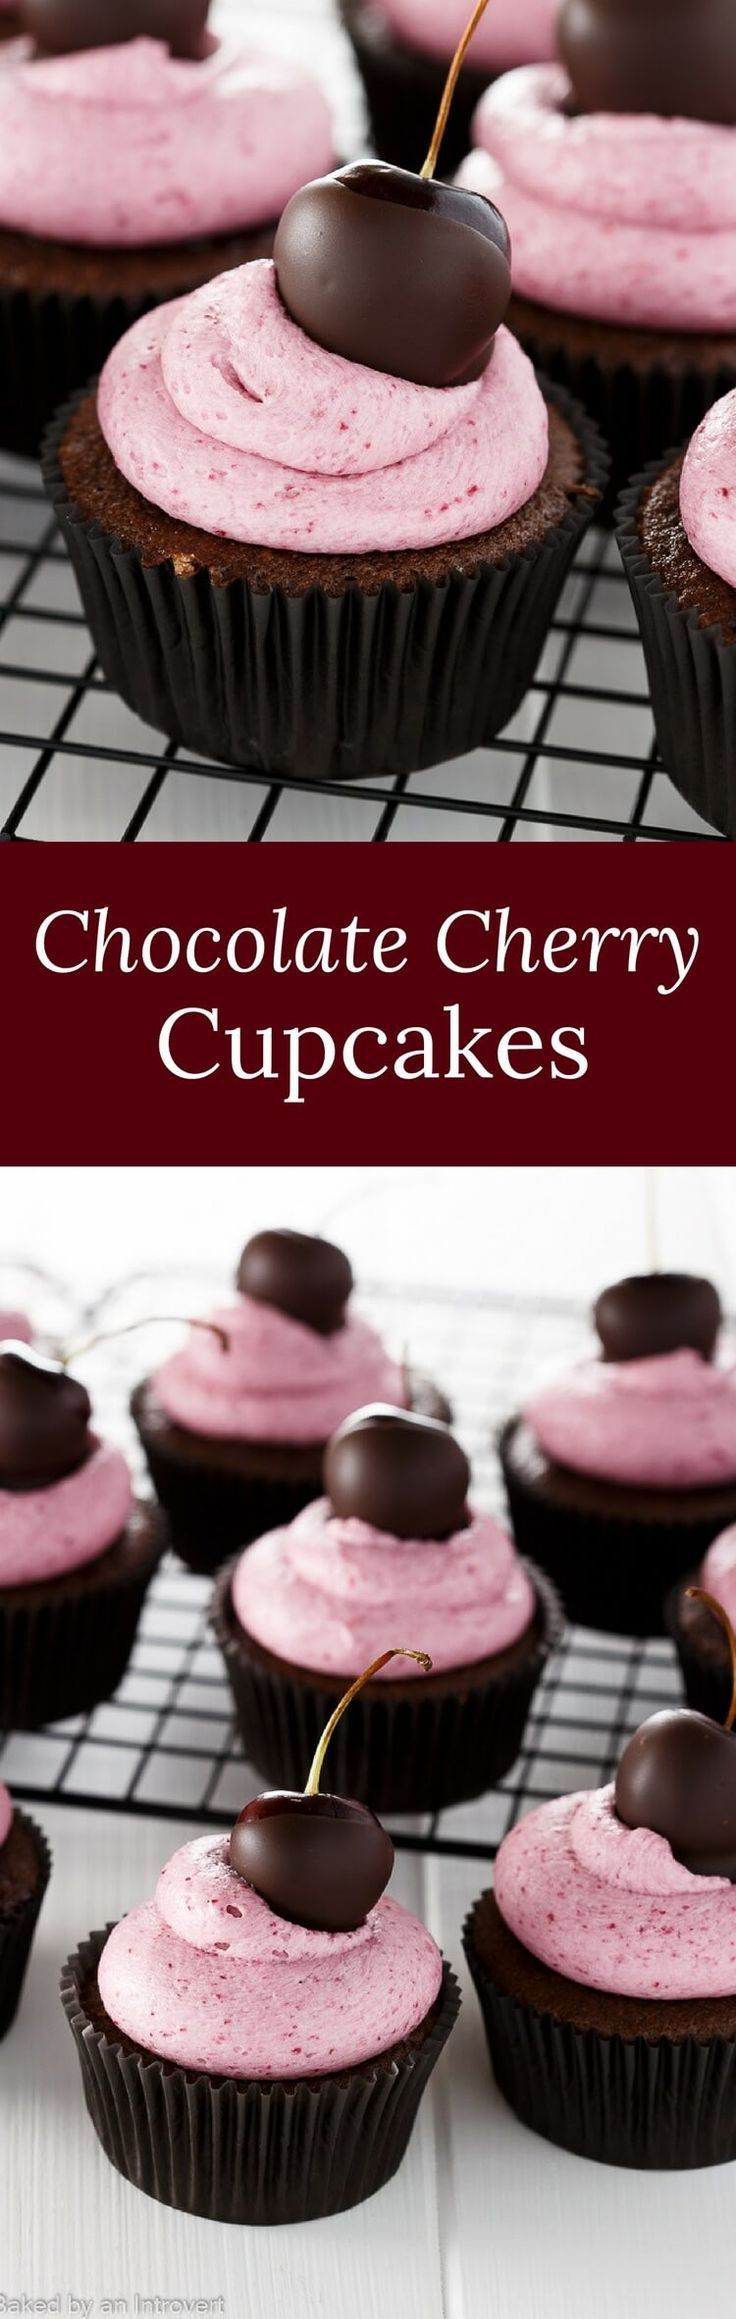 Chocolate Cherry Cupcakes - Chocolate cupcakes filled with cherry preserves and topped with cherry buttercream frosting. via /introvertbaker/